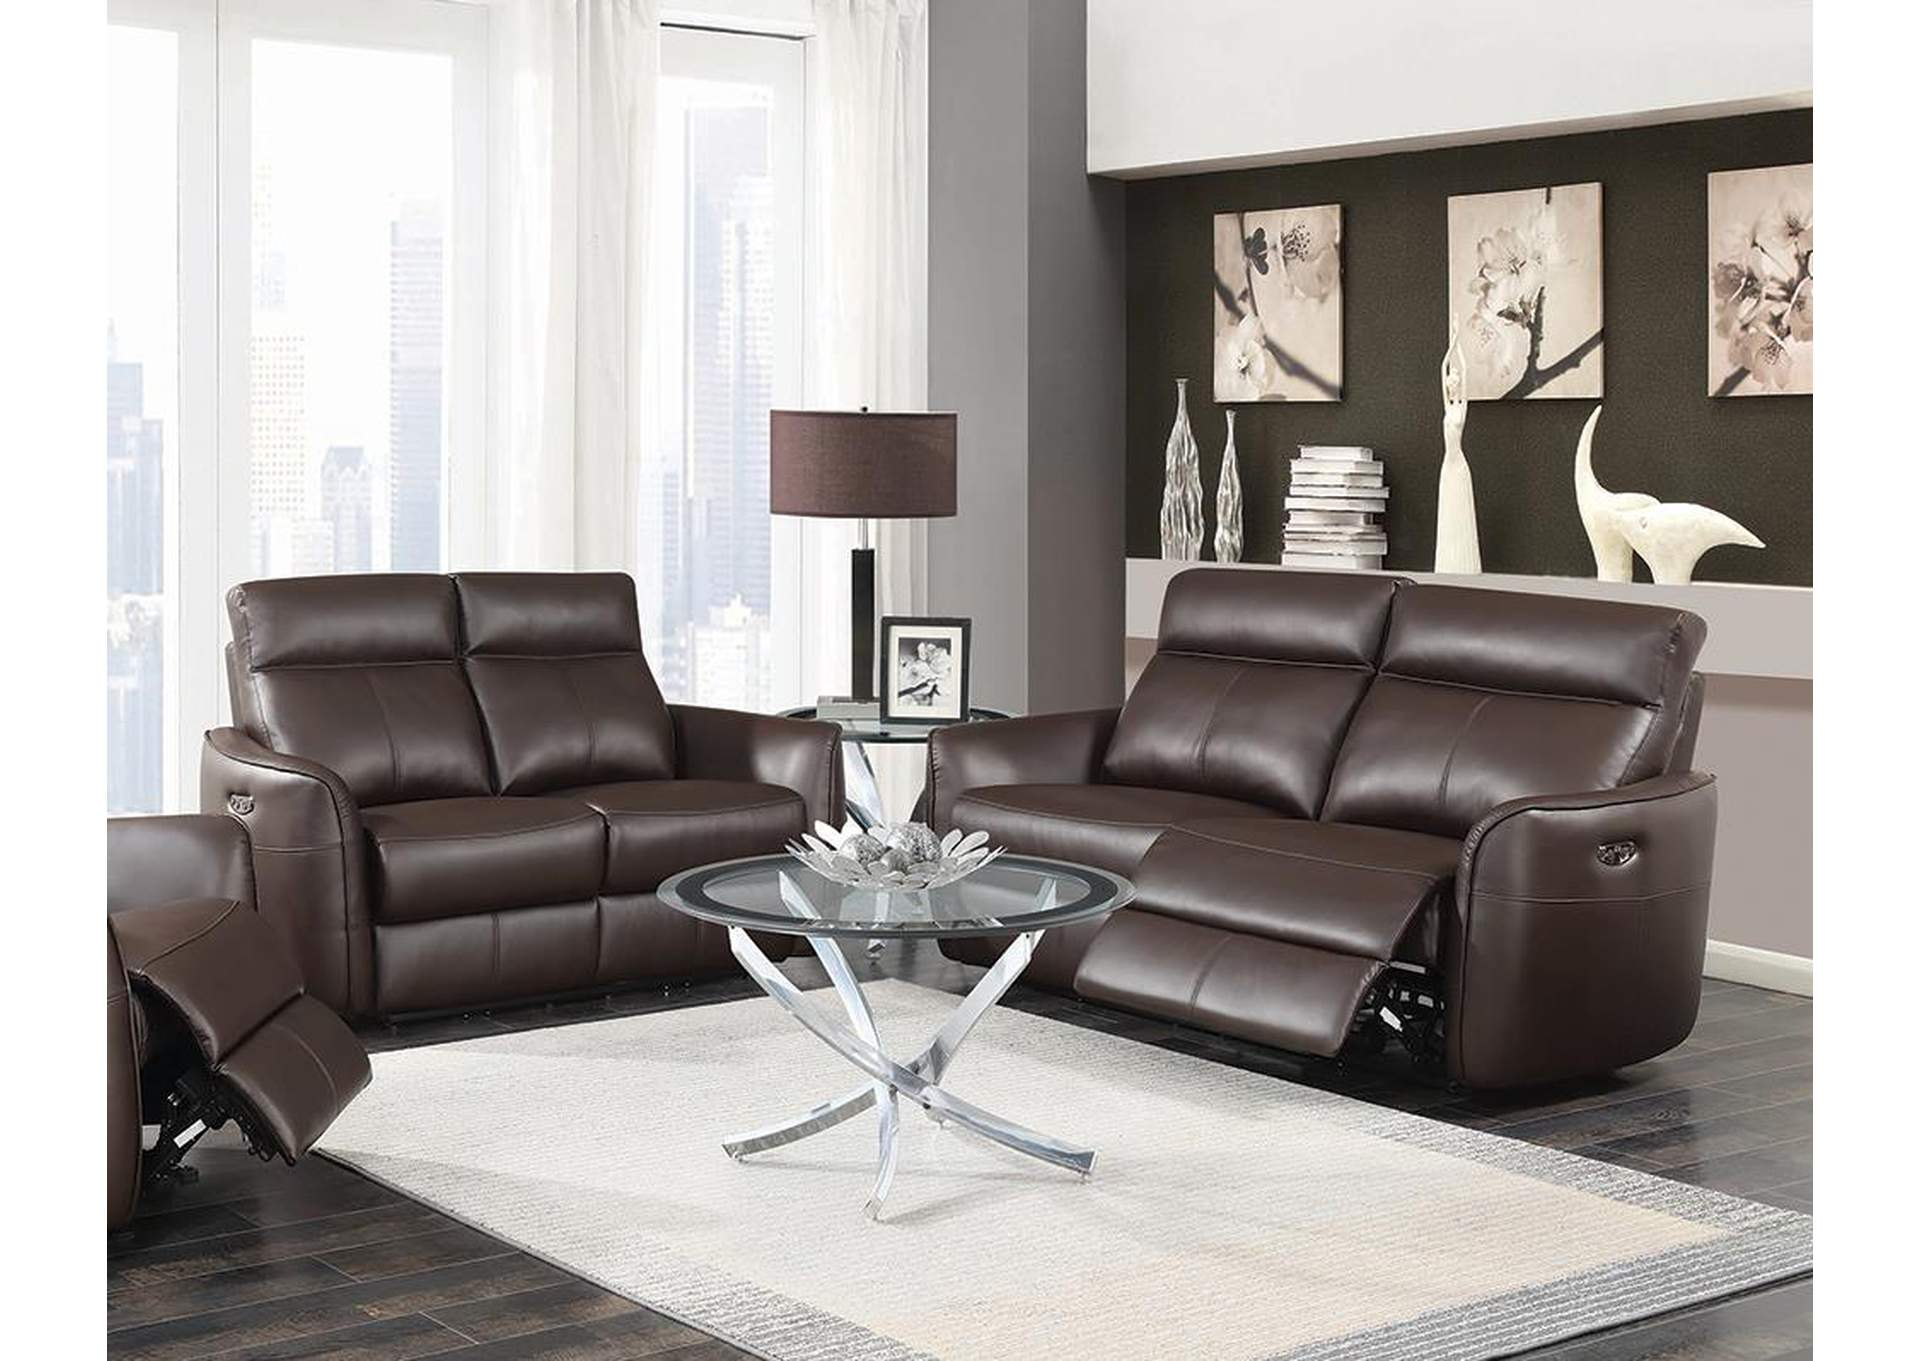 Austin\'s Couch Potatoes | Furniture Stores Austin, Texas Dark Brown ...